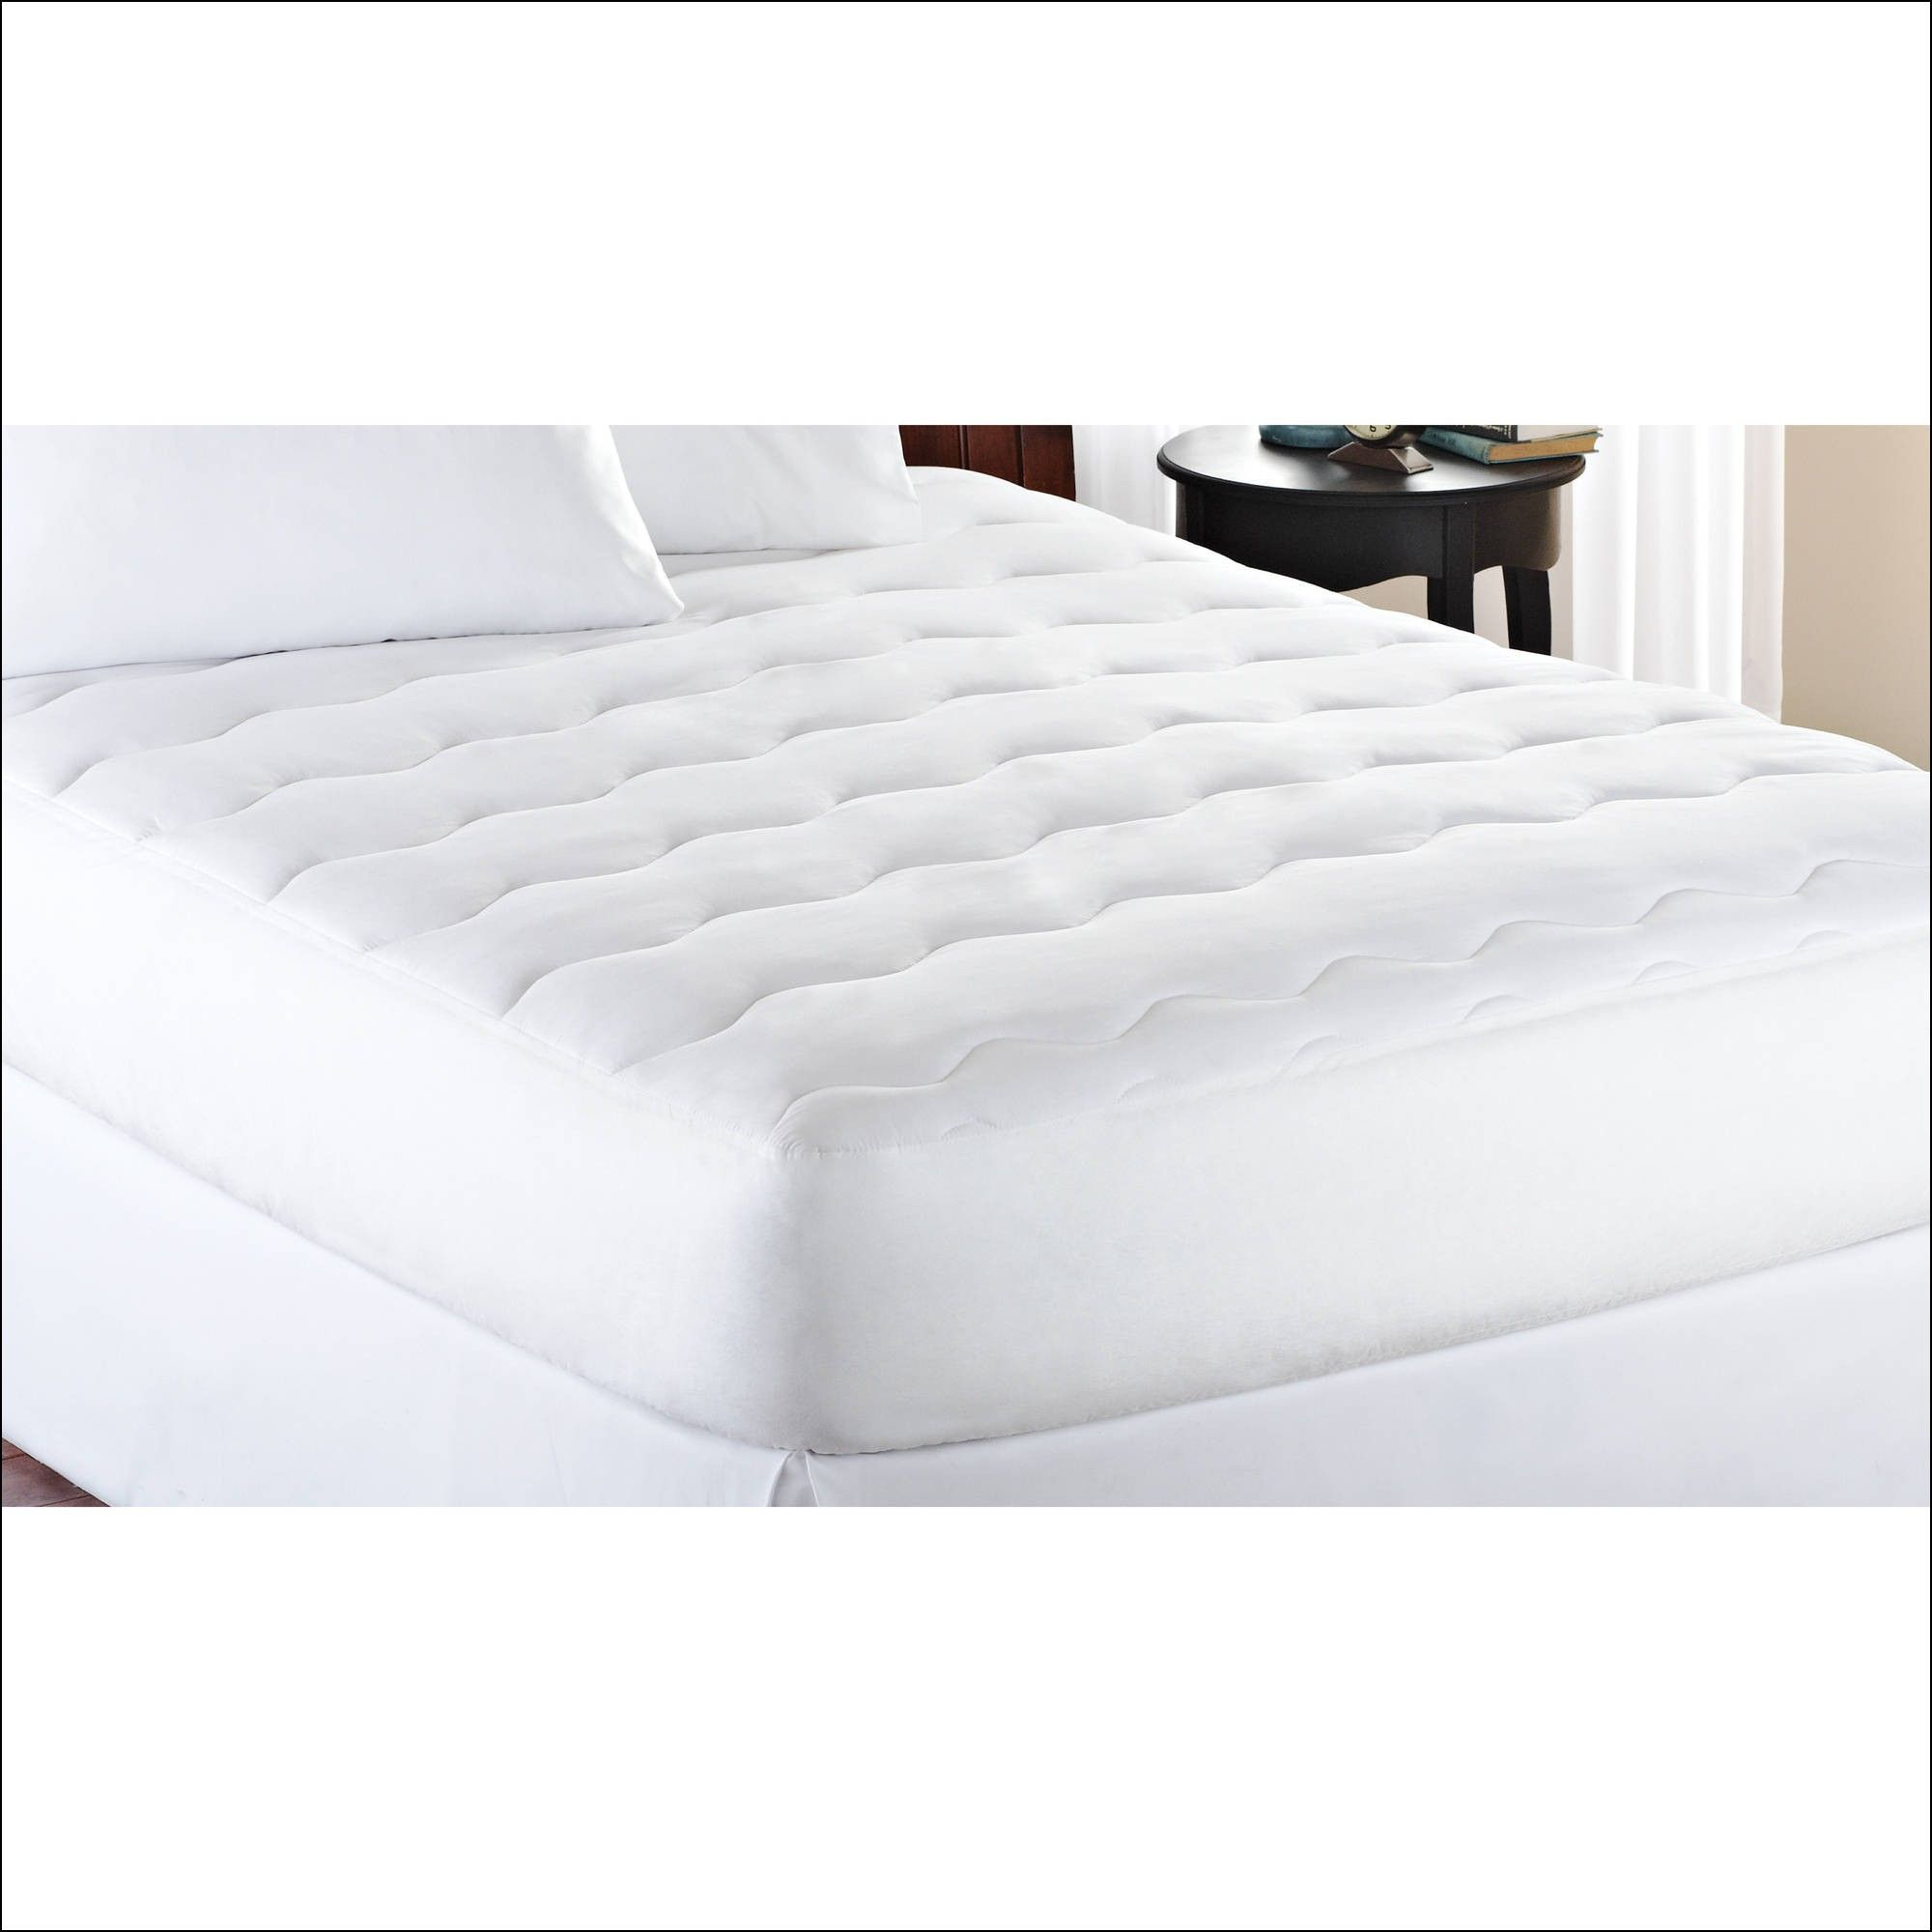 Pillow Top Mattress Covers Magnificent Thick Pillow Top Mattress Pad  Mattress Ideas  Pinterest  Pillow